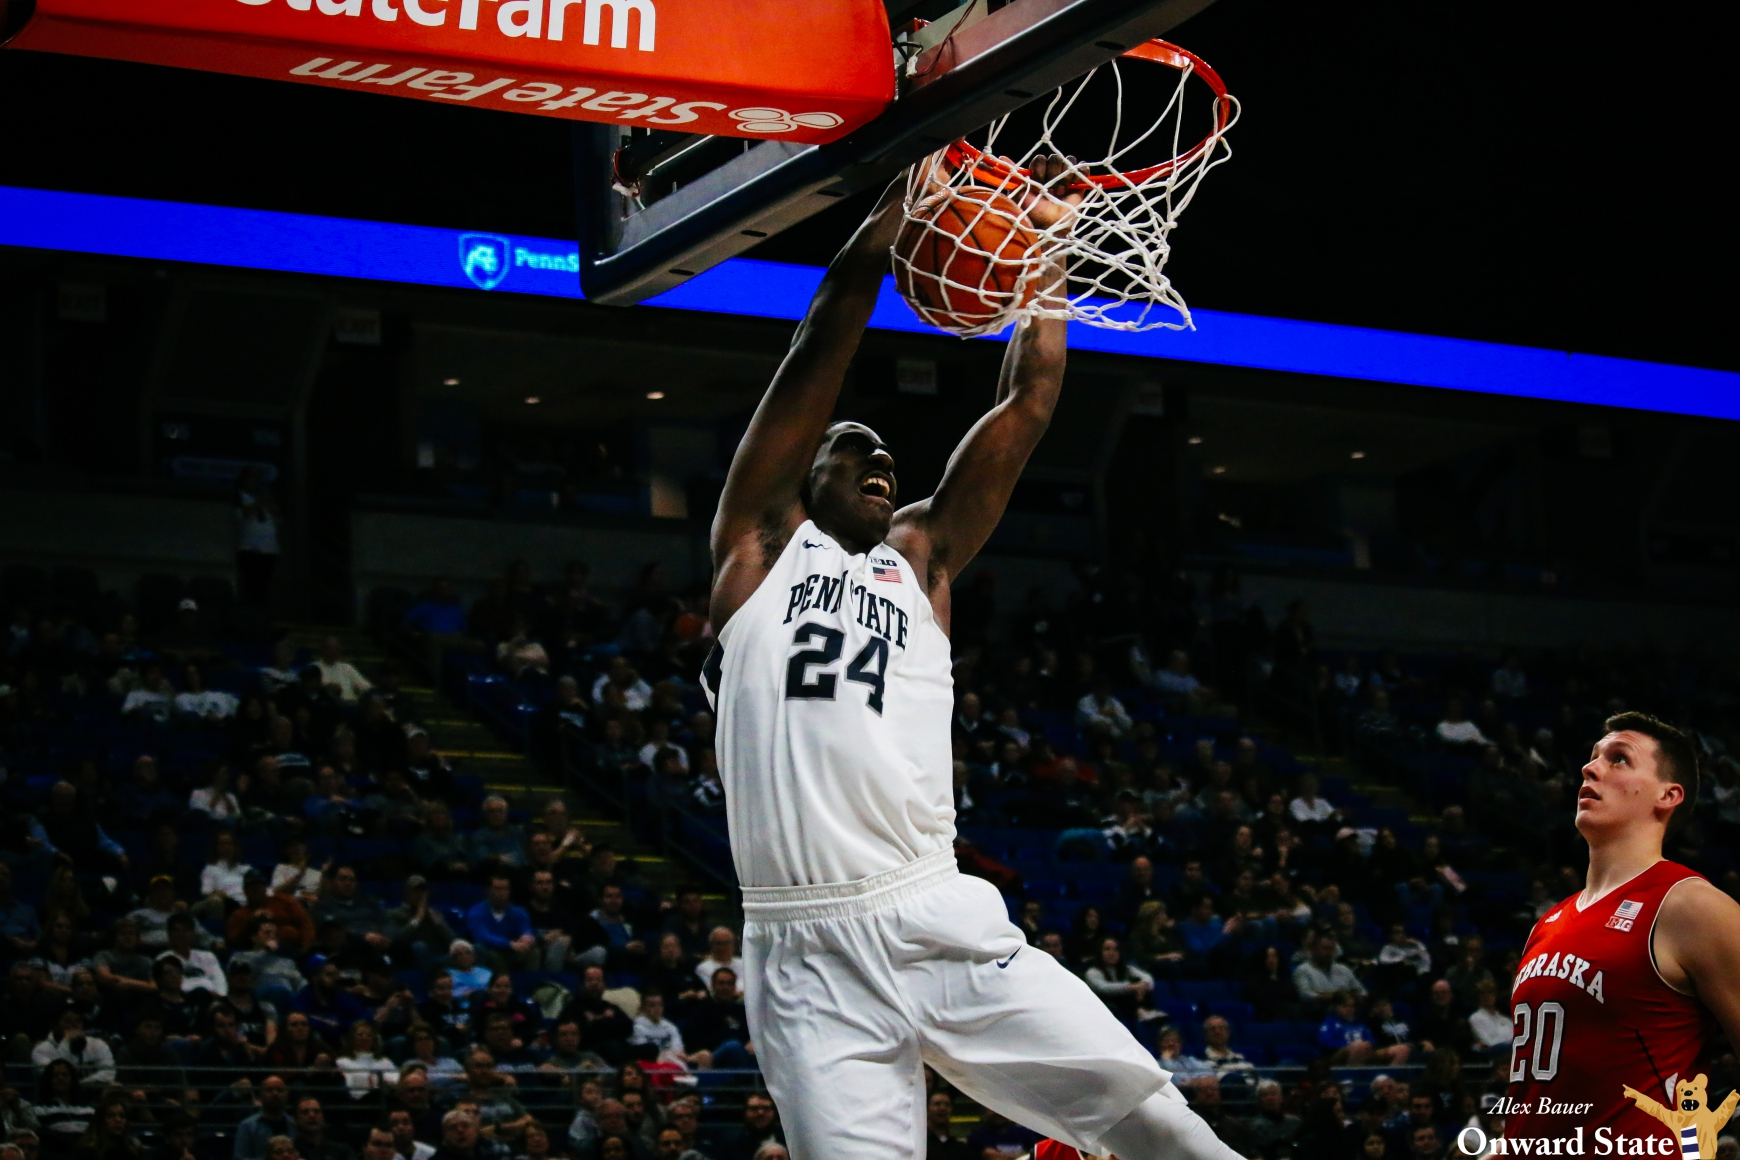 Mike Watkins to miss Penn State men's basketball's game against Nebraska